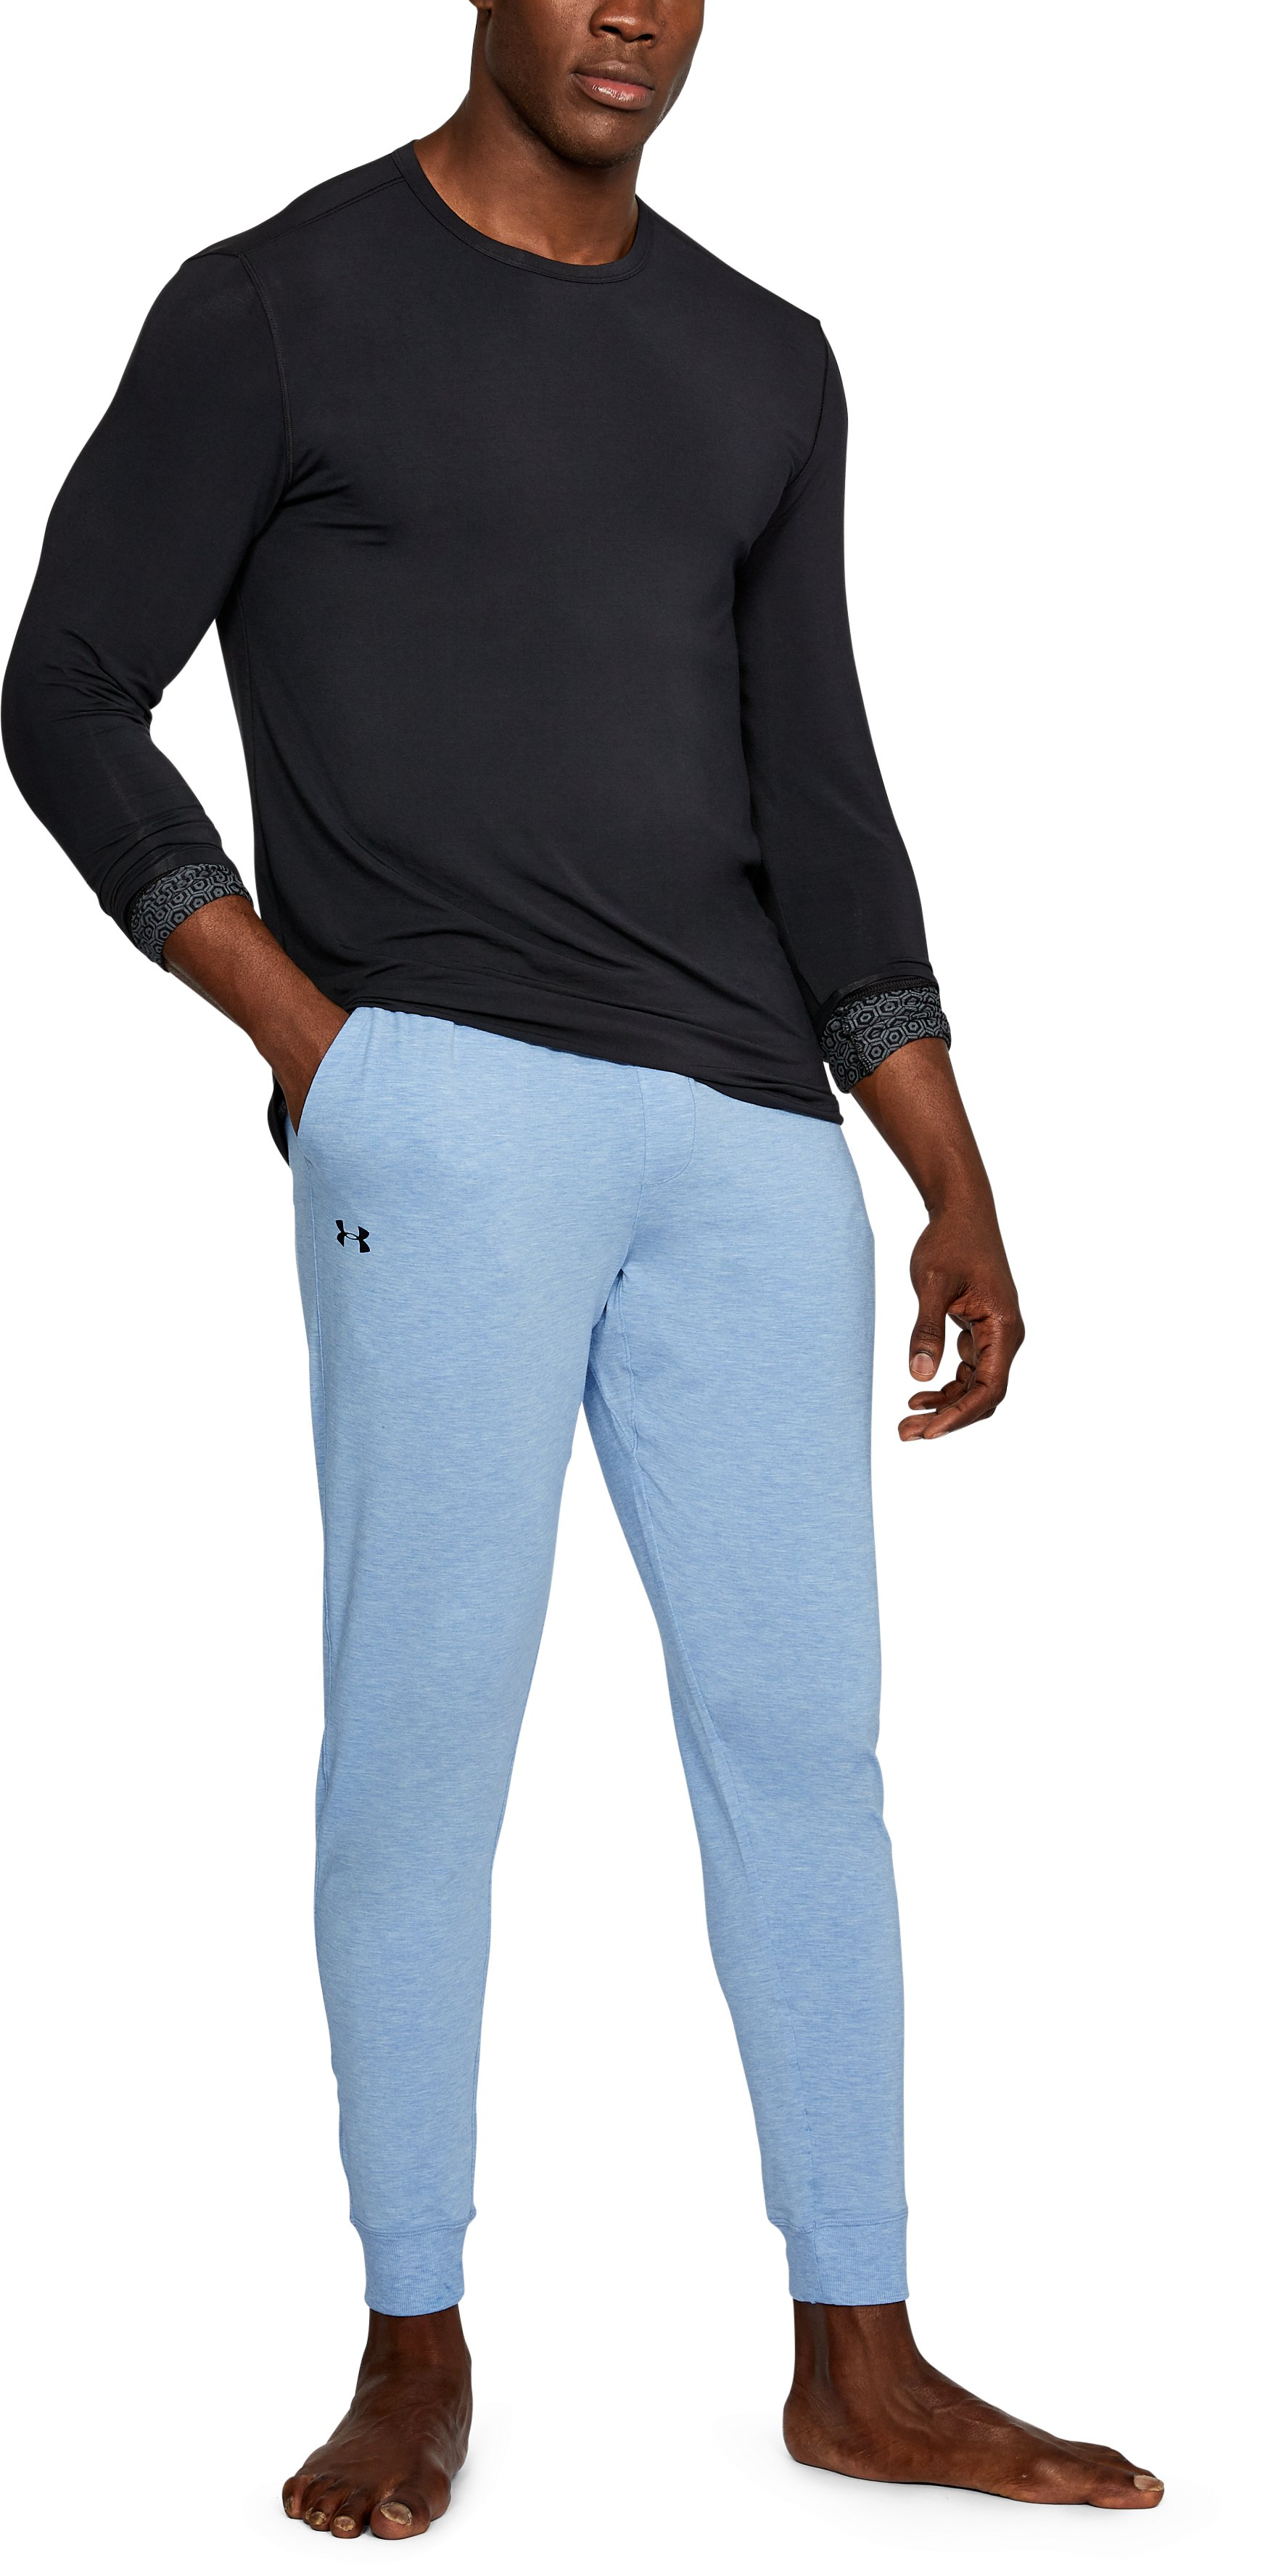 Men's Athlete Recovery Ultra Comfort Sleepwear Pants, WATER MEDIUM HEATHER,